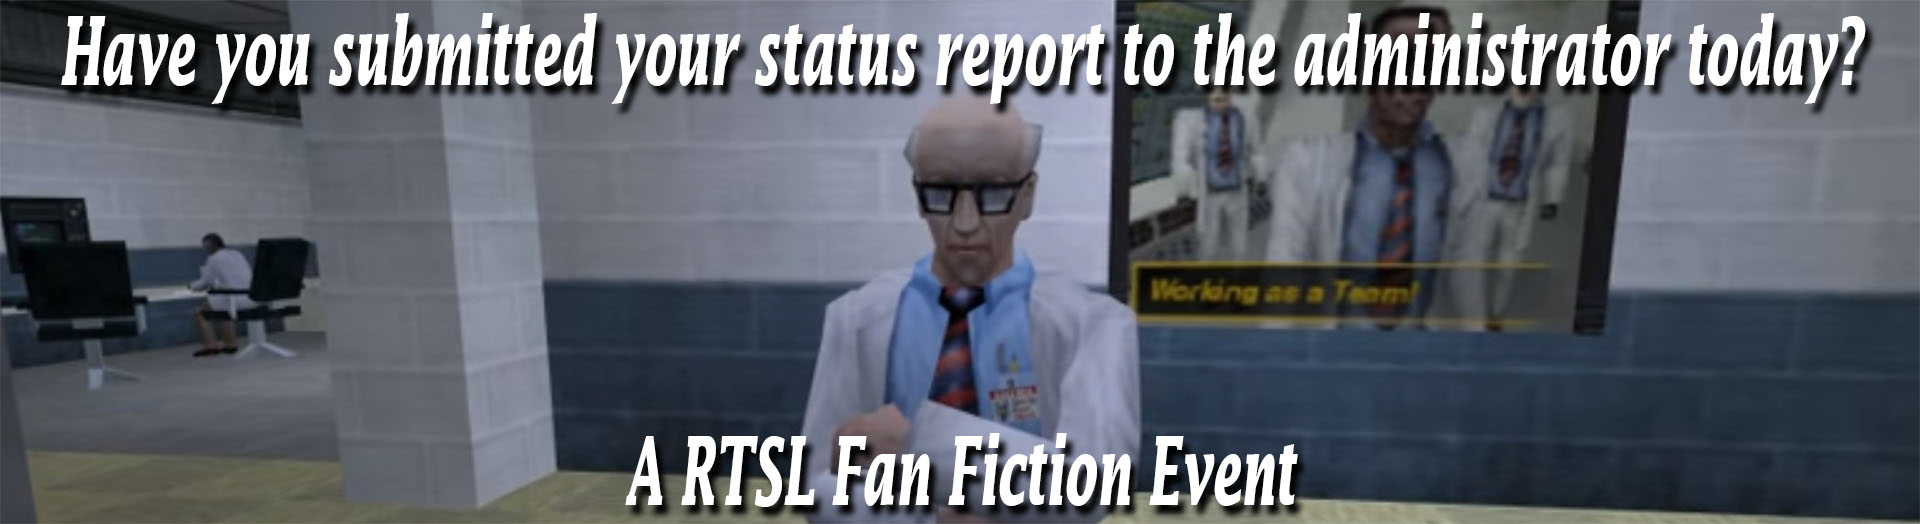 Have you submitted your status report to the administrator today? - Fan Fiction Event.